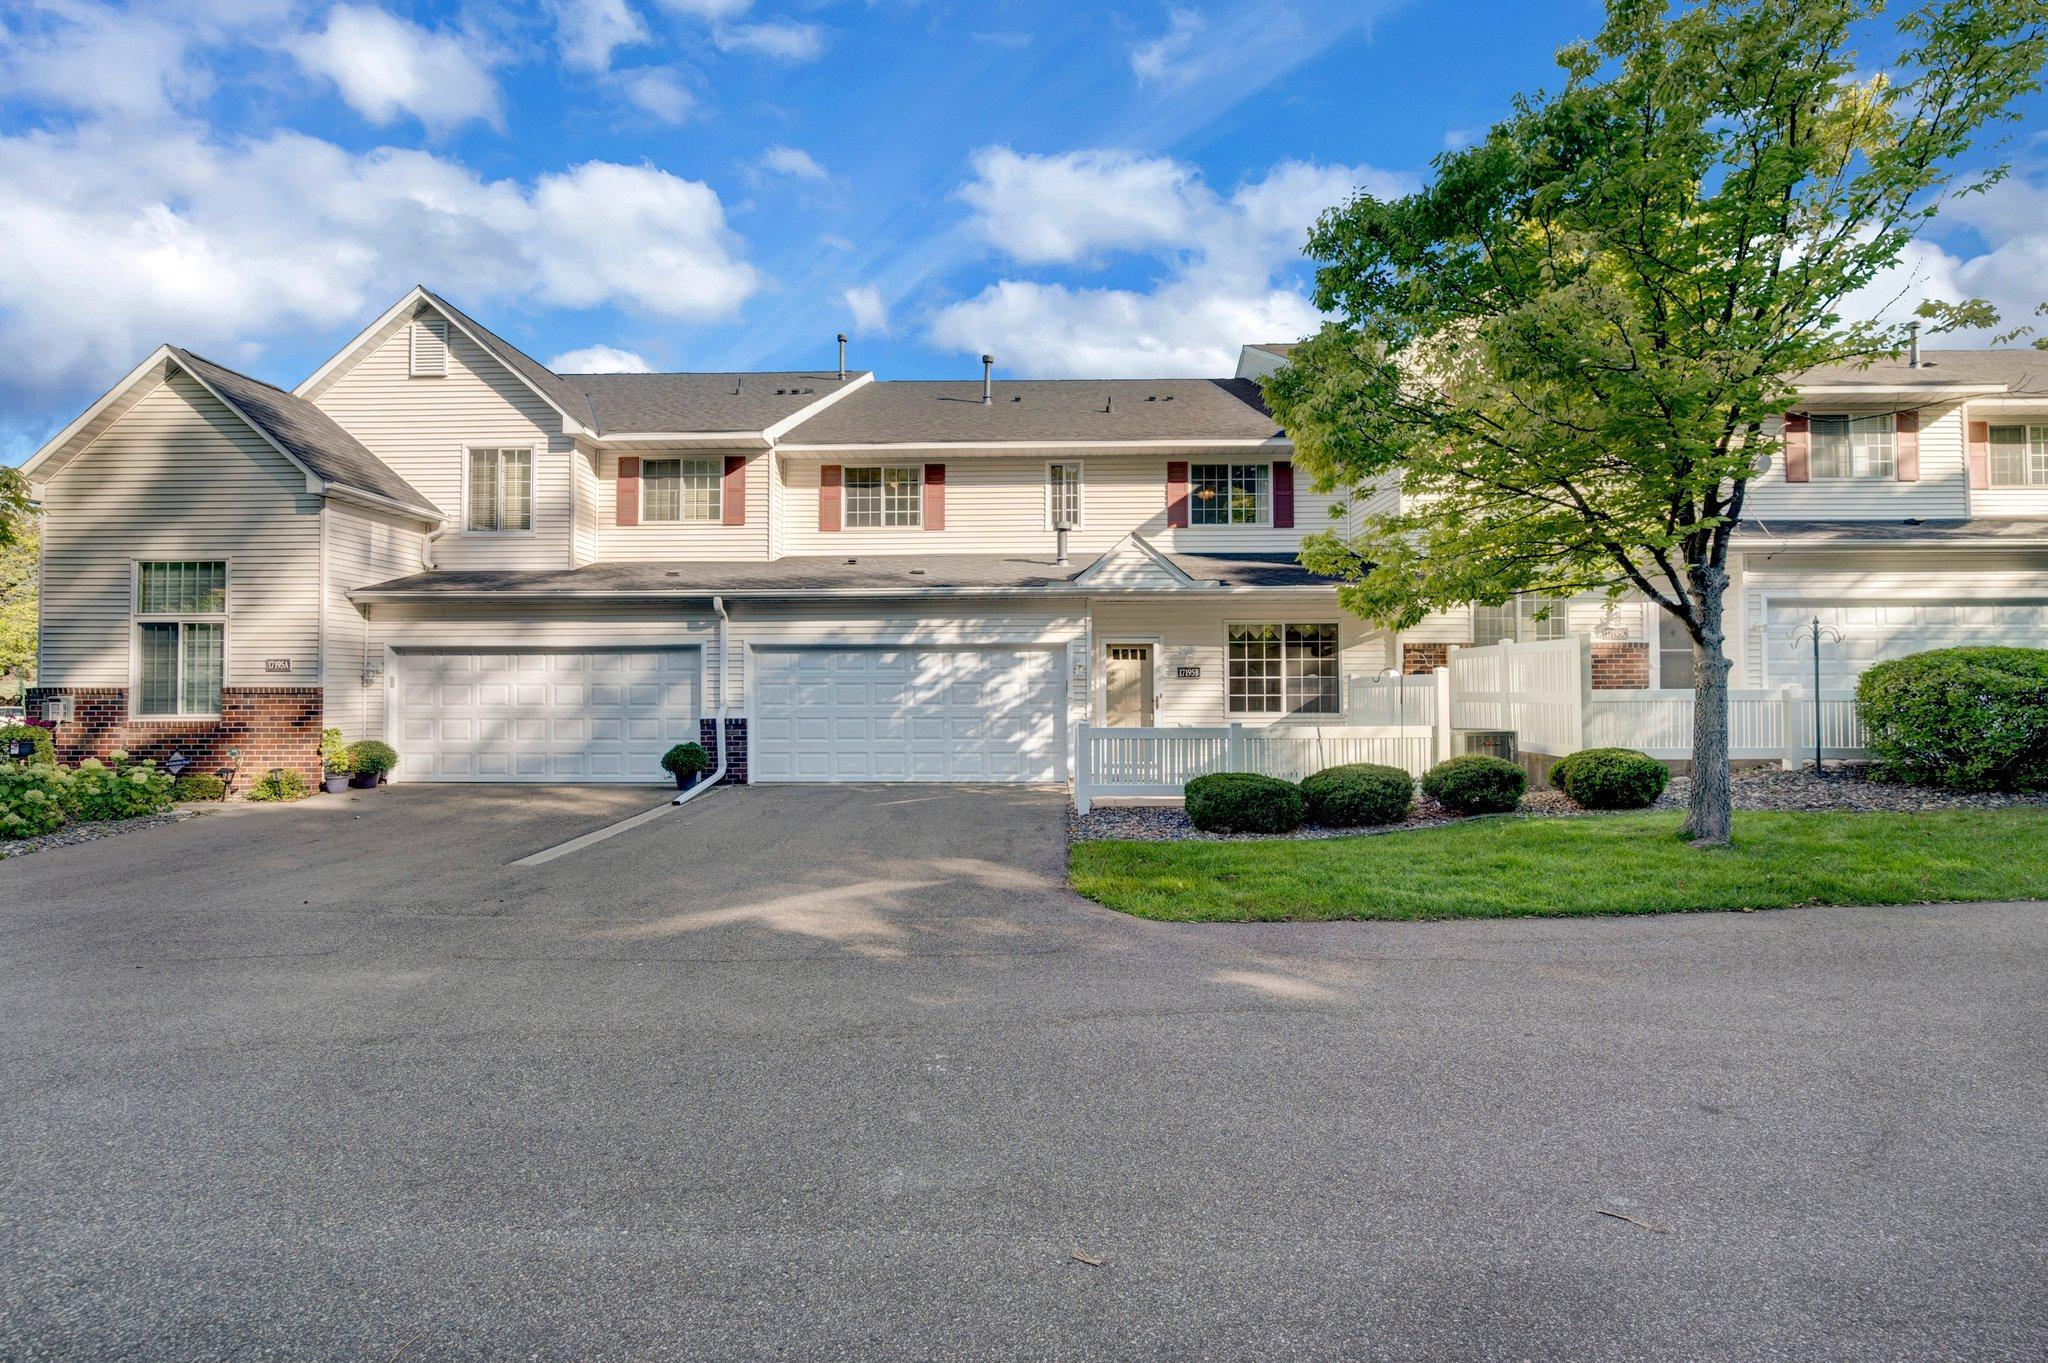 17195 49th Avenue, Plymouth, Minnesota 55446, 2 Bedrooms Bedrooms, ,1 BathroomBathrooms,Residential,For Sale,49th,NST6096109